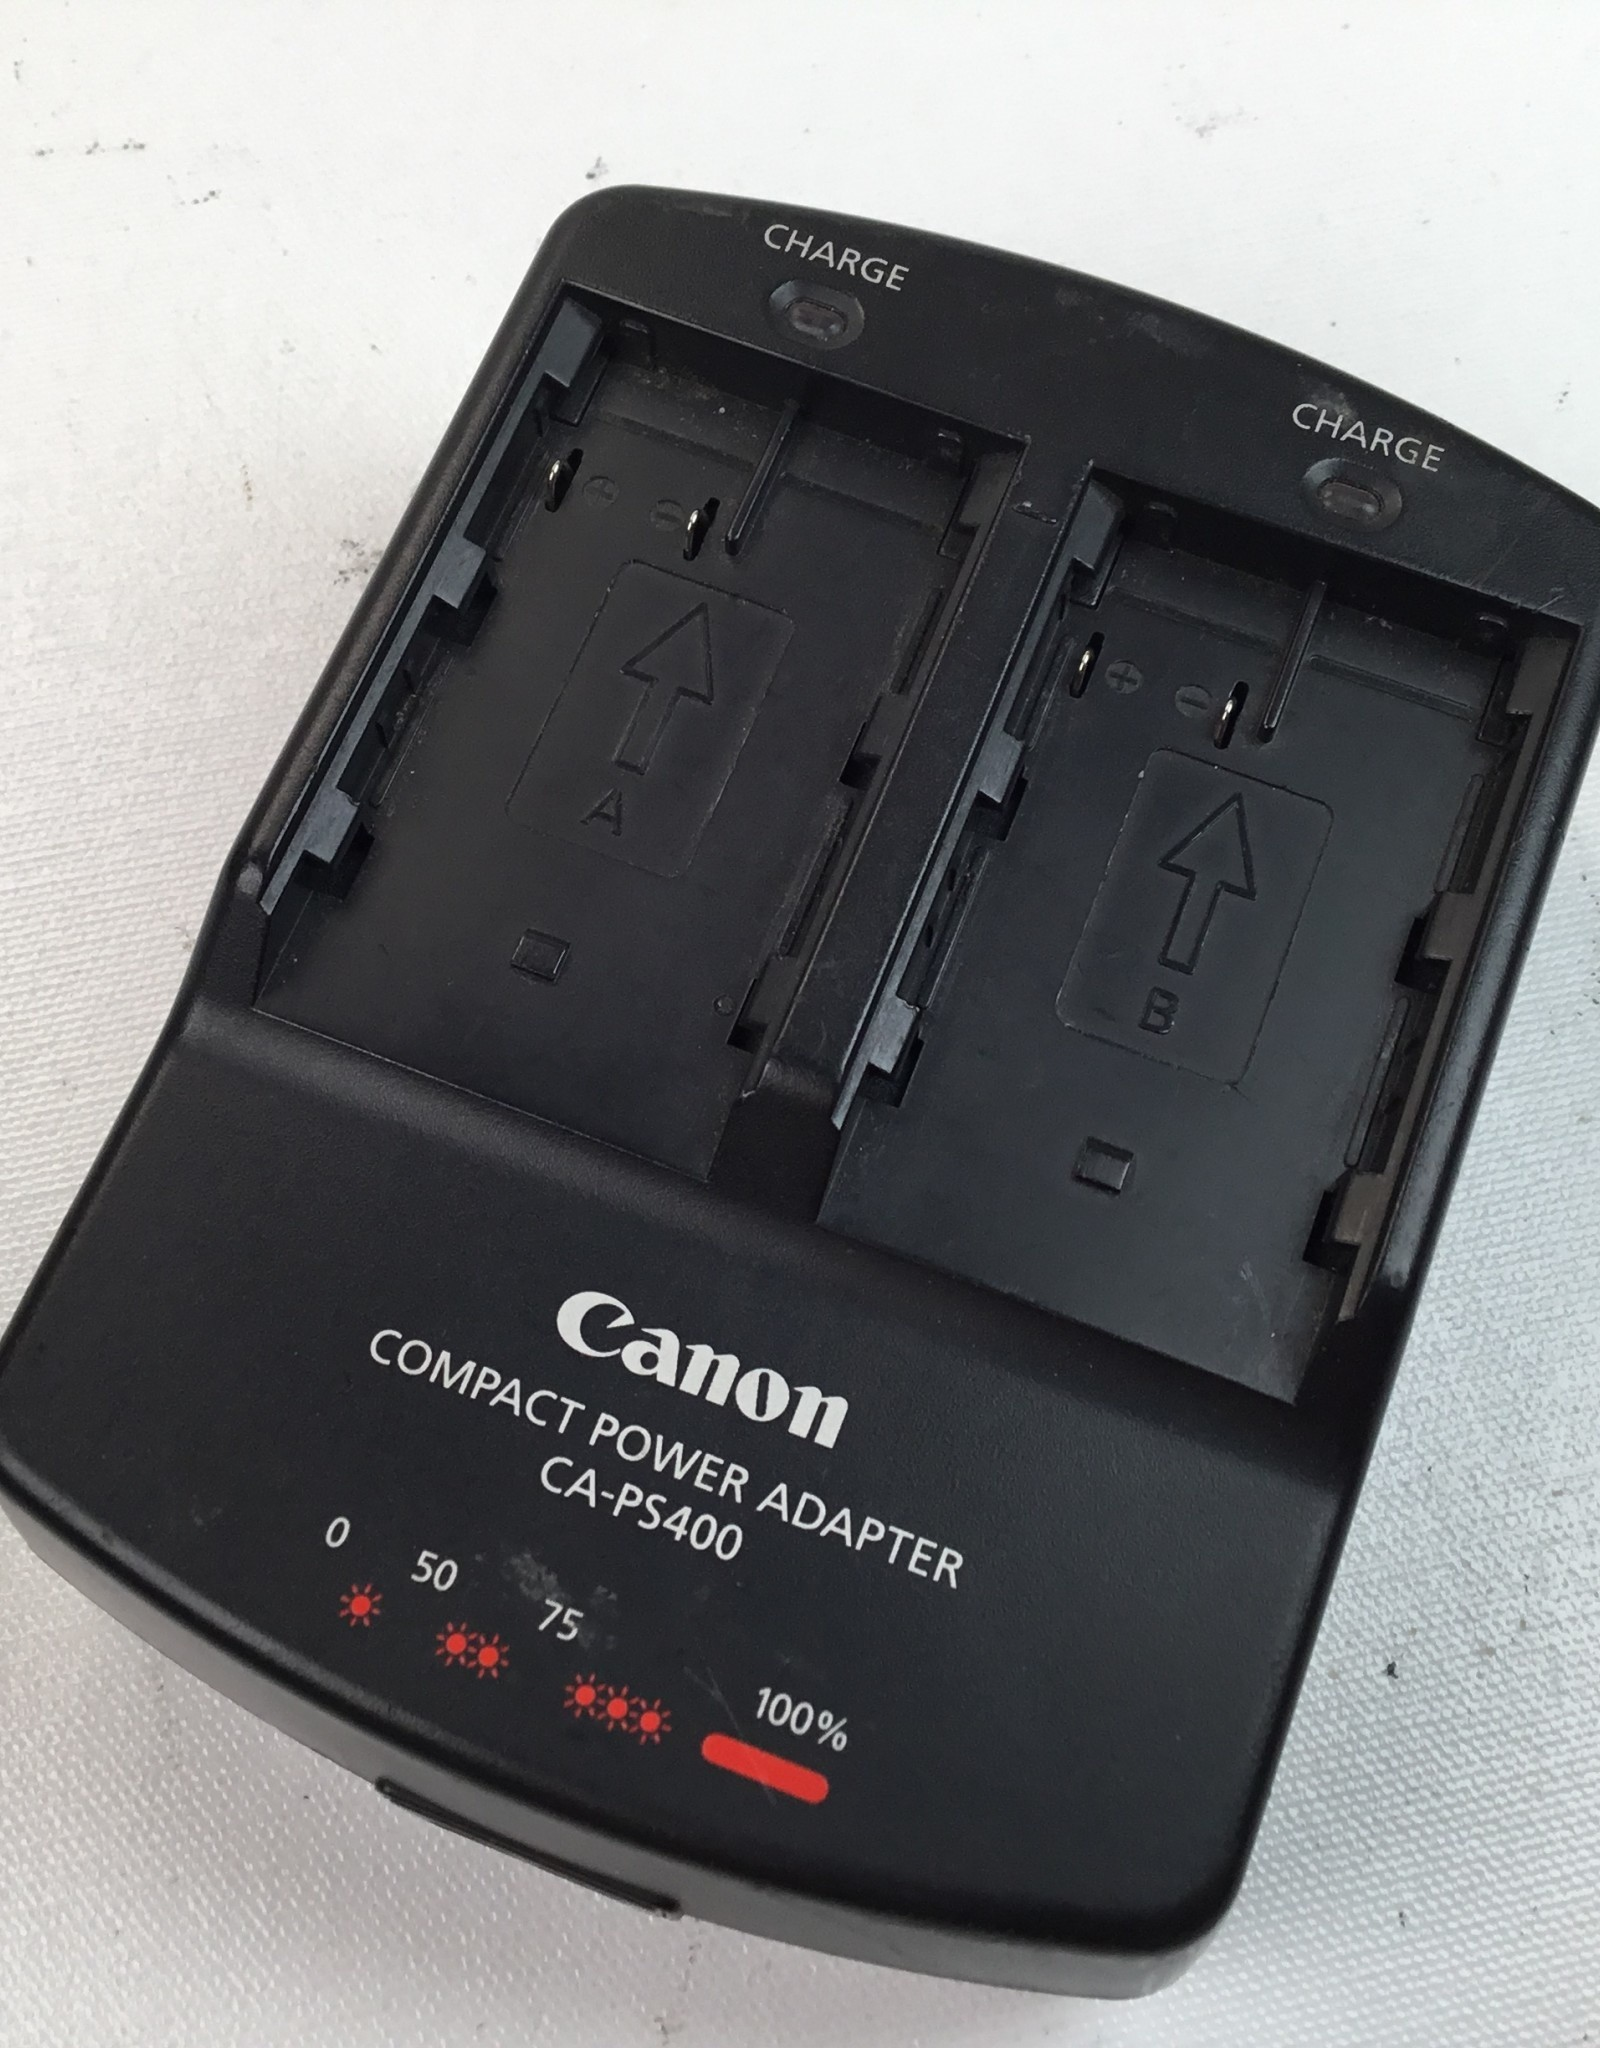 CANON Canon CA-PS400 Dual Battery Charger for BP-511 Used EX